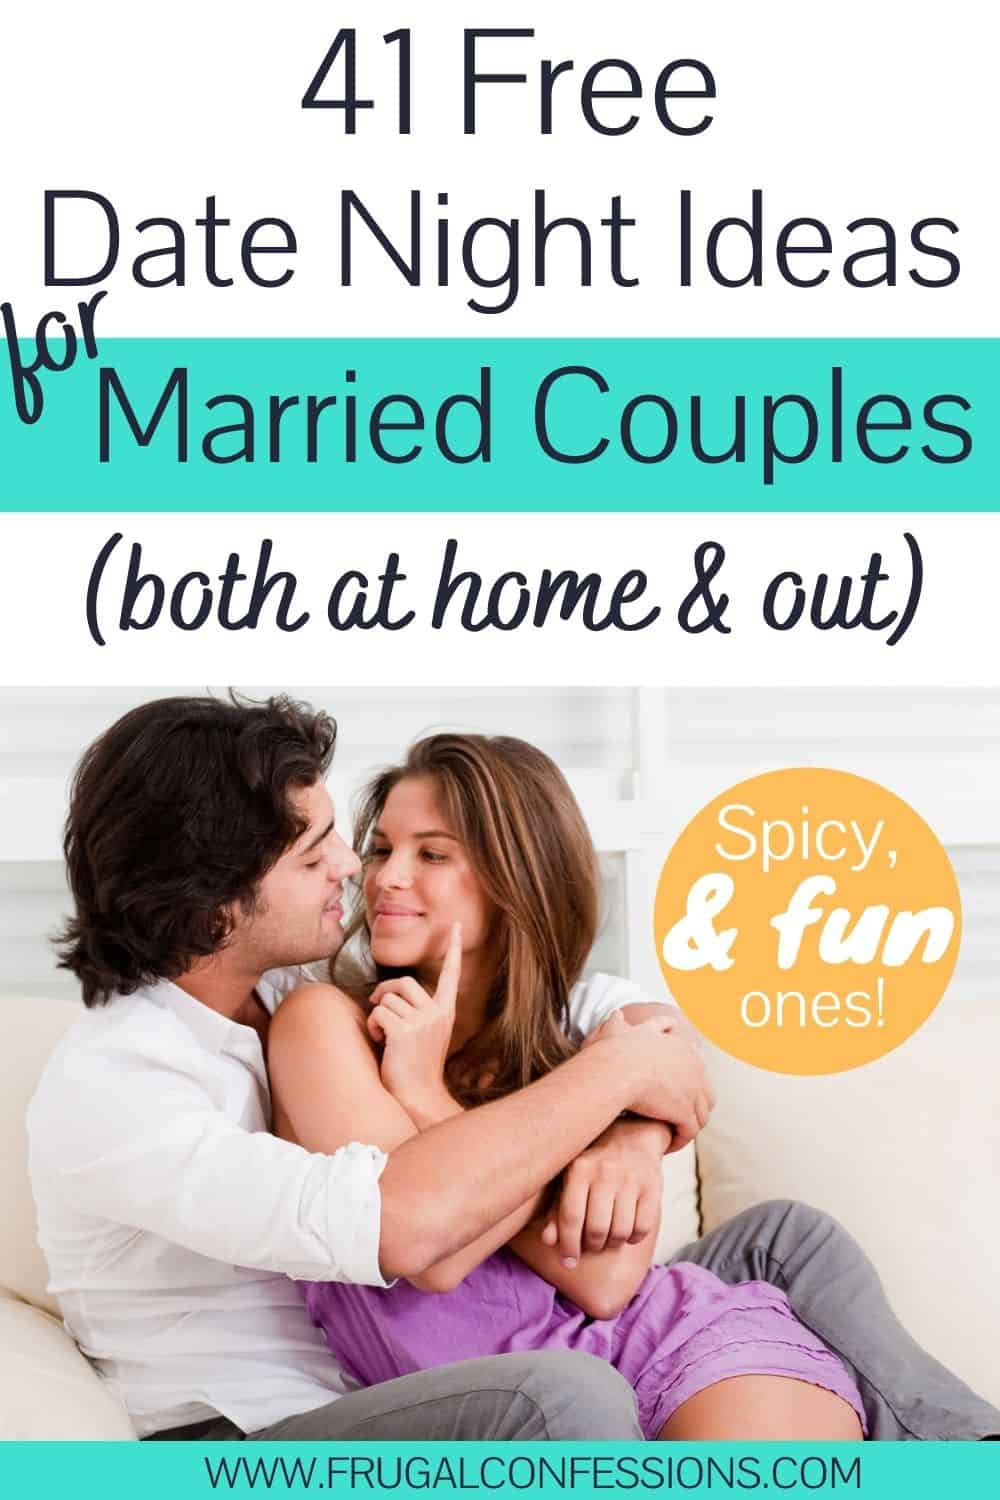 """woman and man cuddling on couch looking expectantly at each other, text overlay """"41 free date night ideas for married couples"""""""